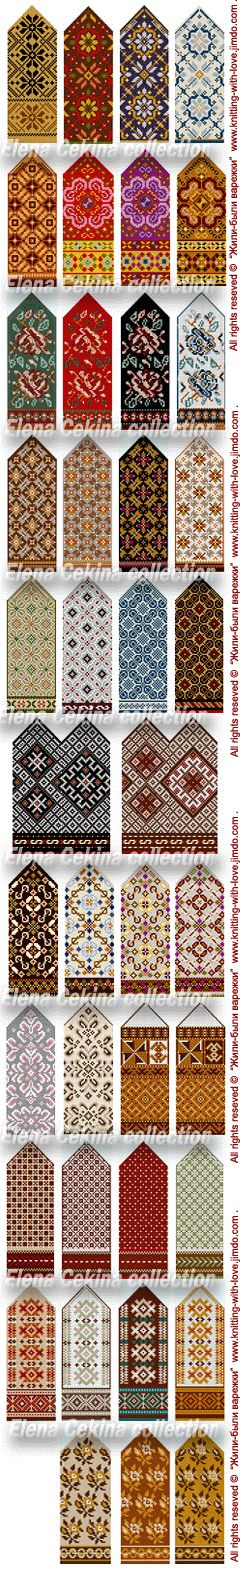 Latvian mittens, Fair isle knitting, ornament, color pattern